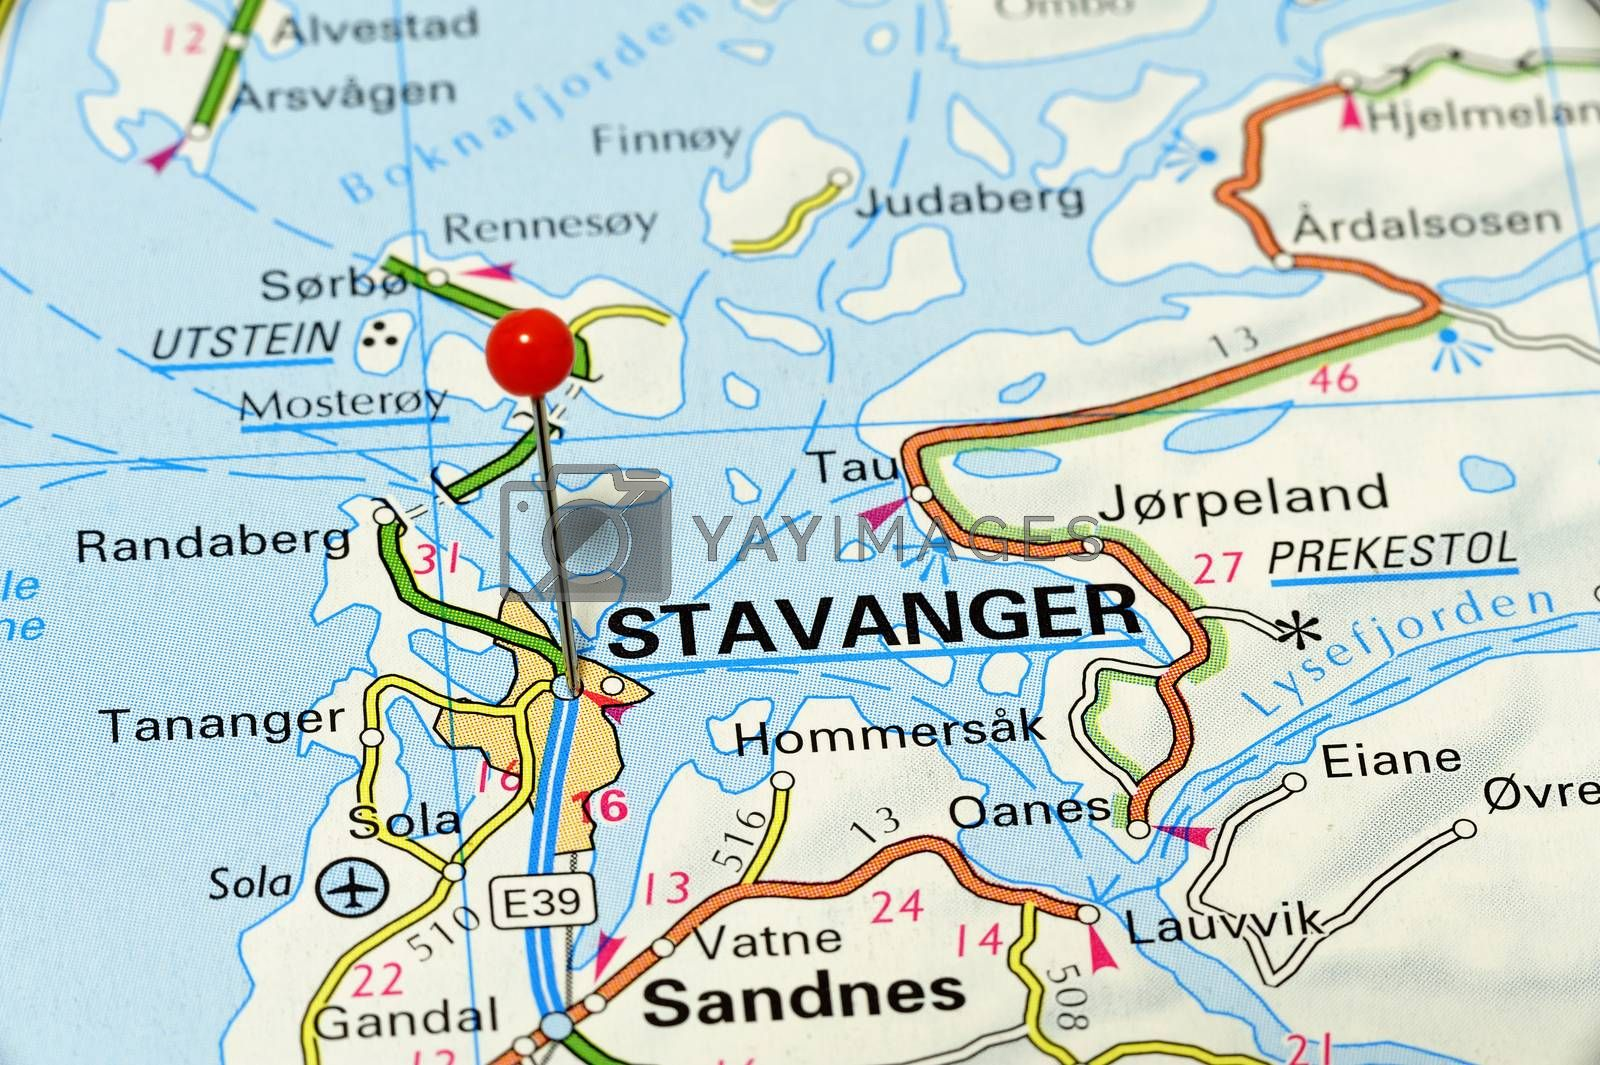 Stavanger - famous city in Norway. Red flag pin on an old map showing travel destination.